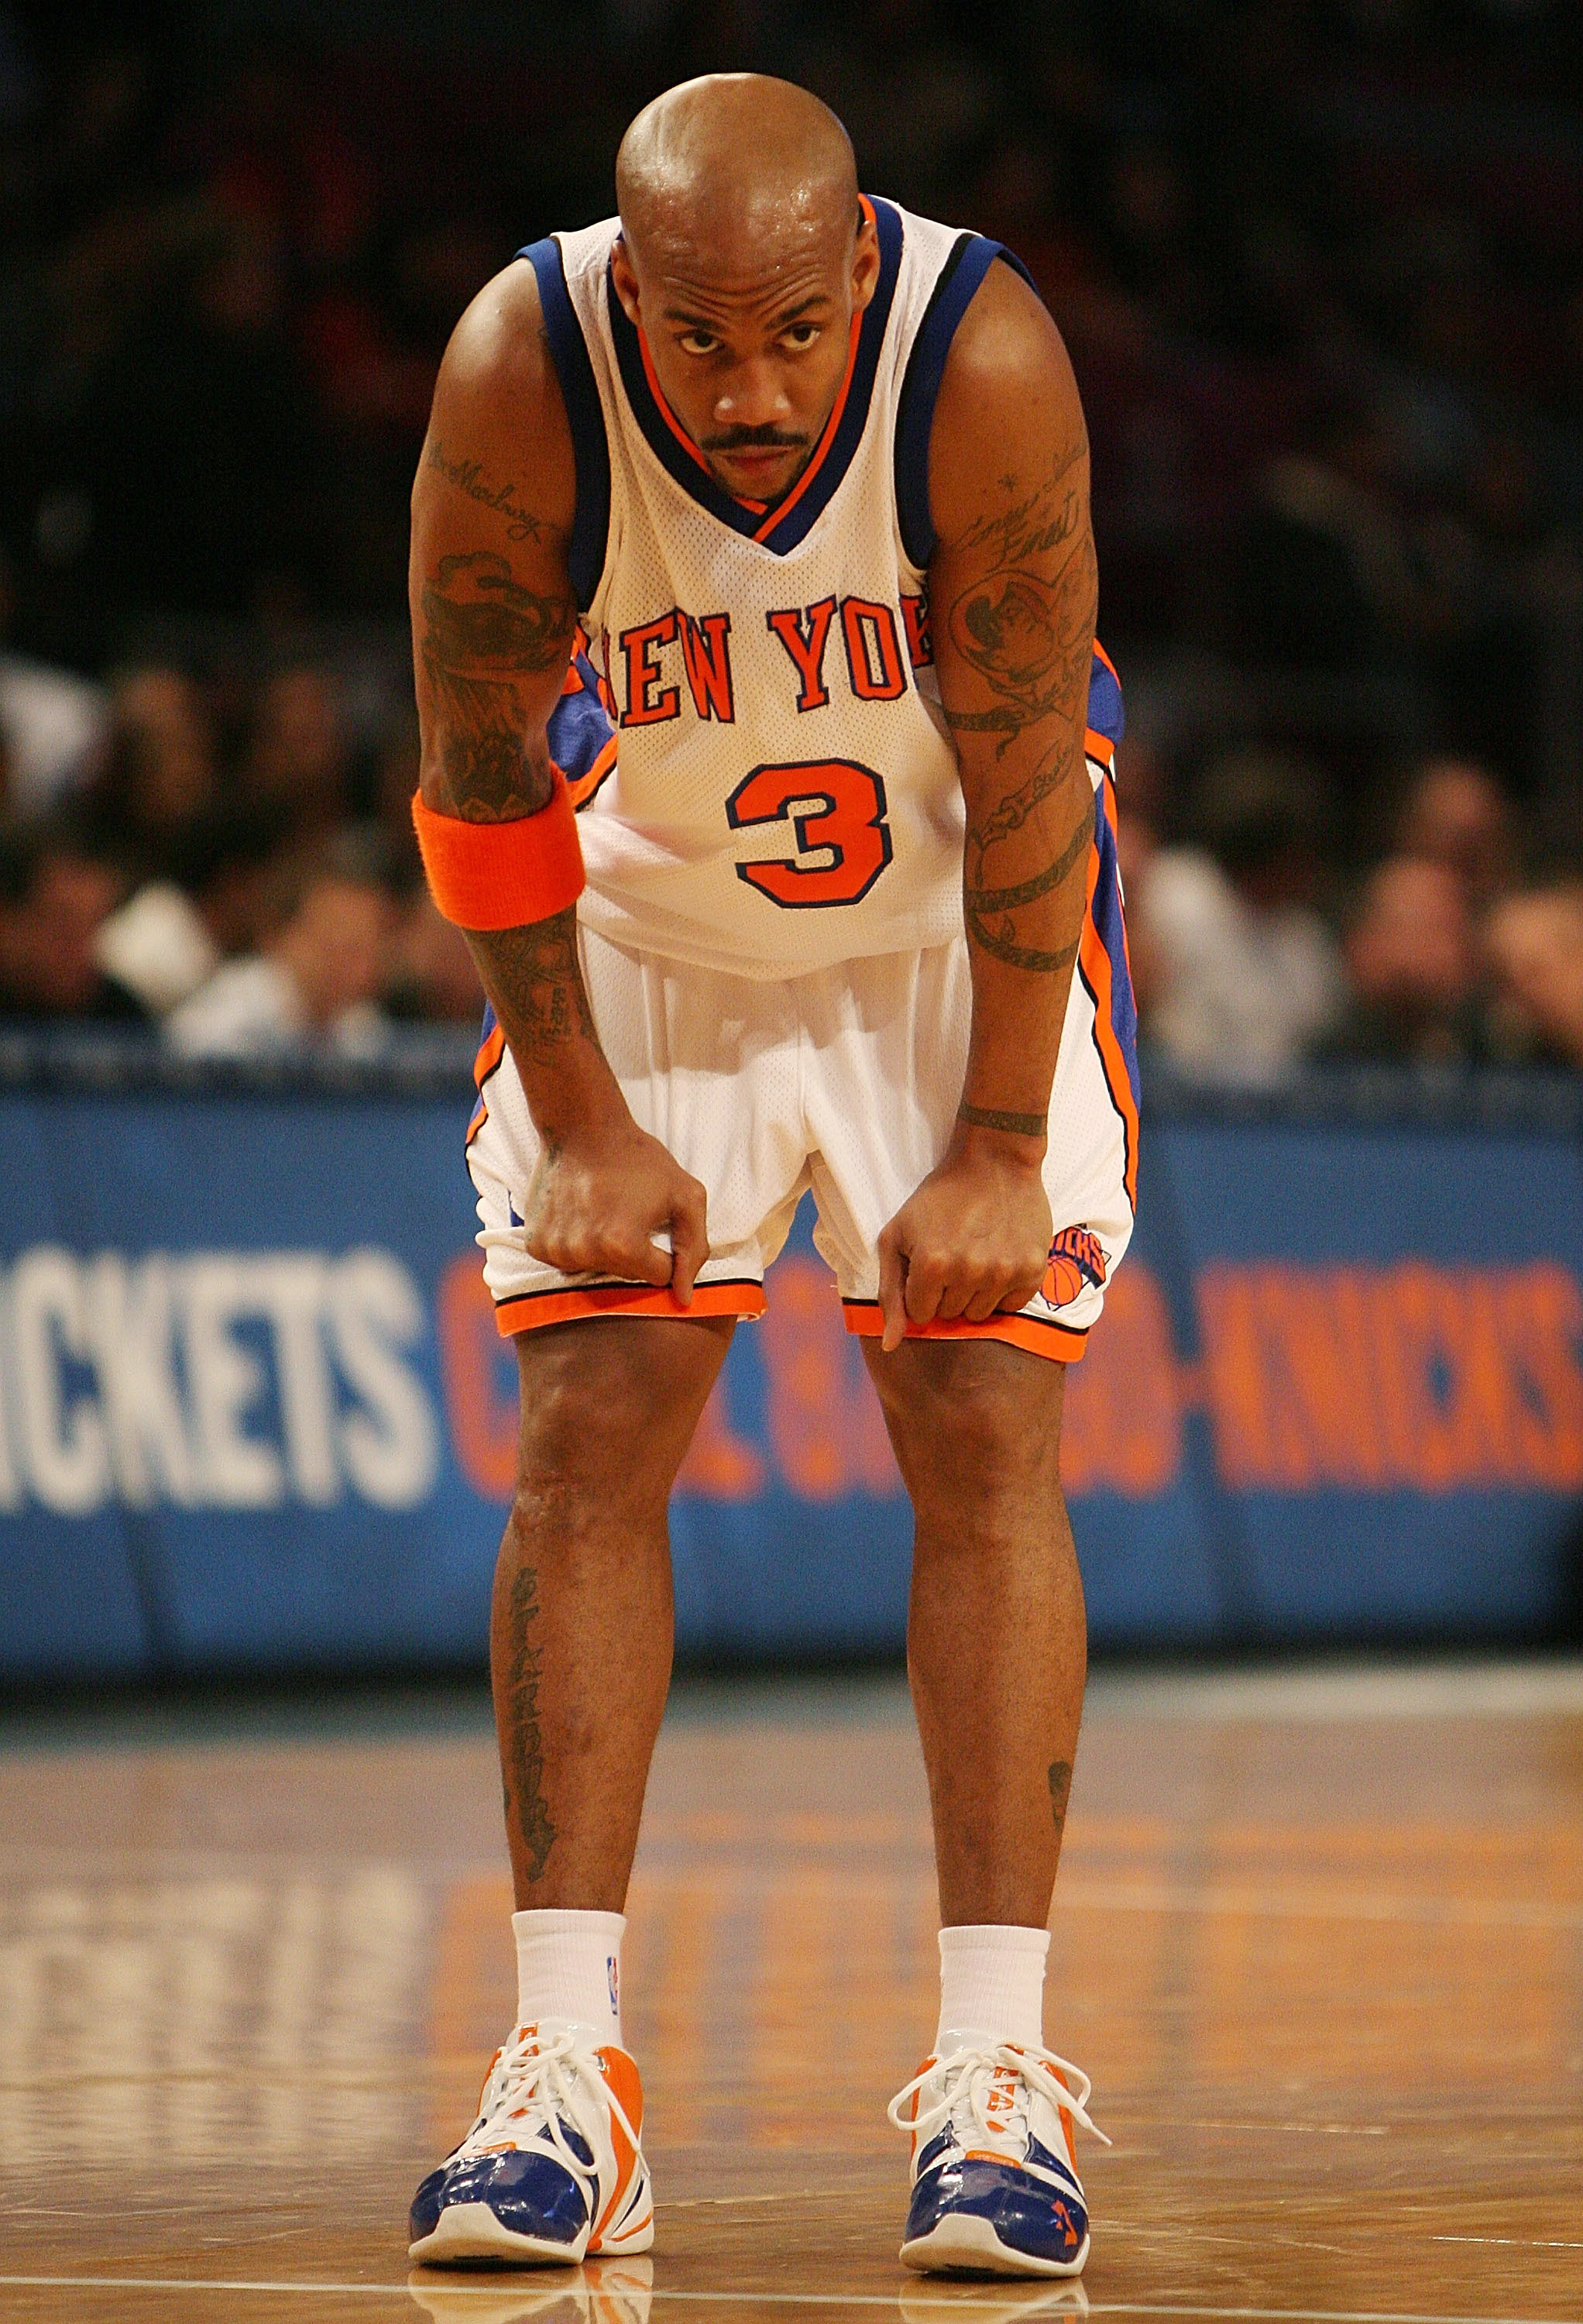 NEW YORK - JANUARY 02:  Stephon Marbury #3 of the New York Knicks waits for a free throw against the Sacramento Kings on January 2, 2008 at Madison Square Garden in New York City. NOTE TO USER: User expressly acknowledges and agrees that, by downloading a